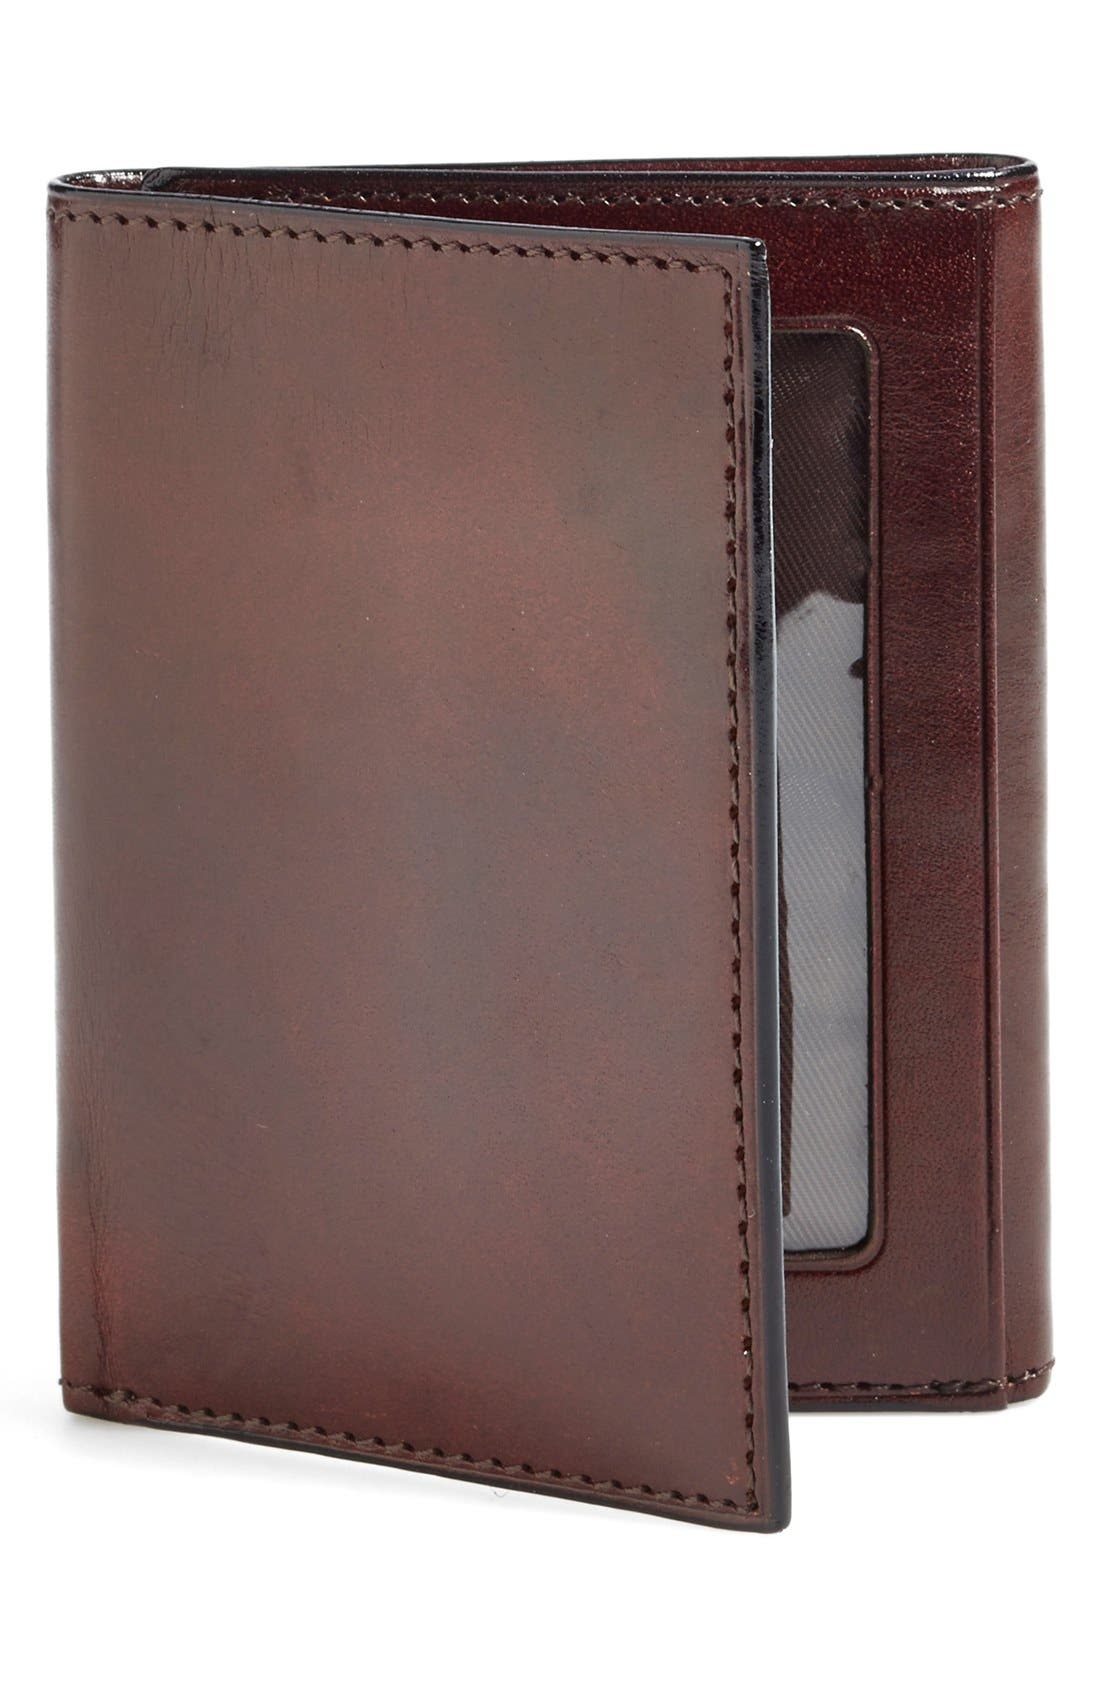 Bosca 'Old Leather' Trifold Wallet